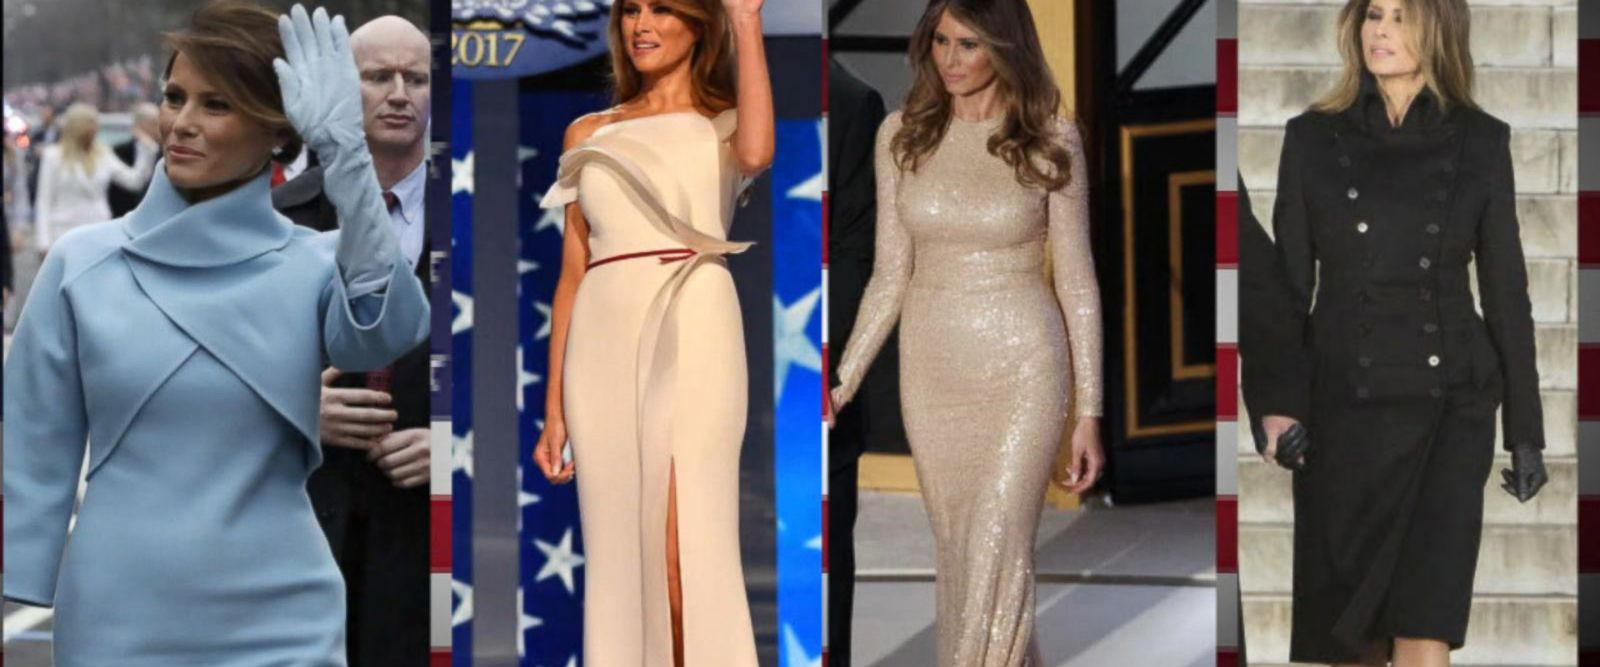 VIDEO: Melania Trump Using Fashion to Put 'America First'